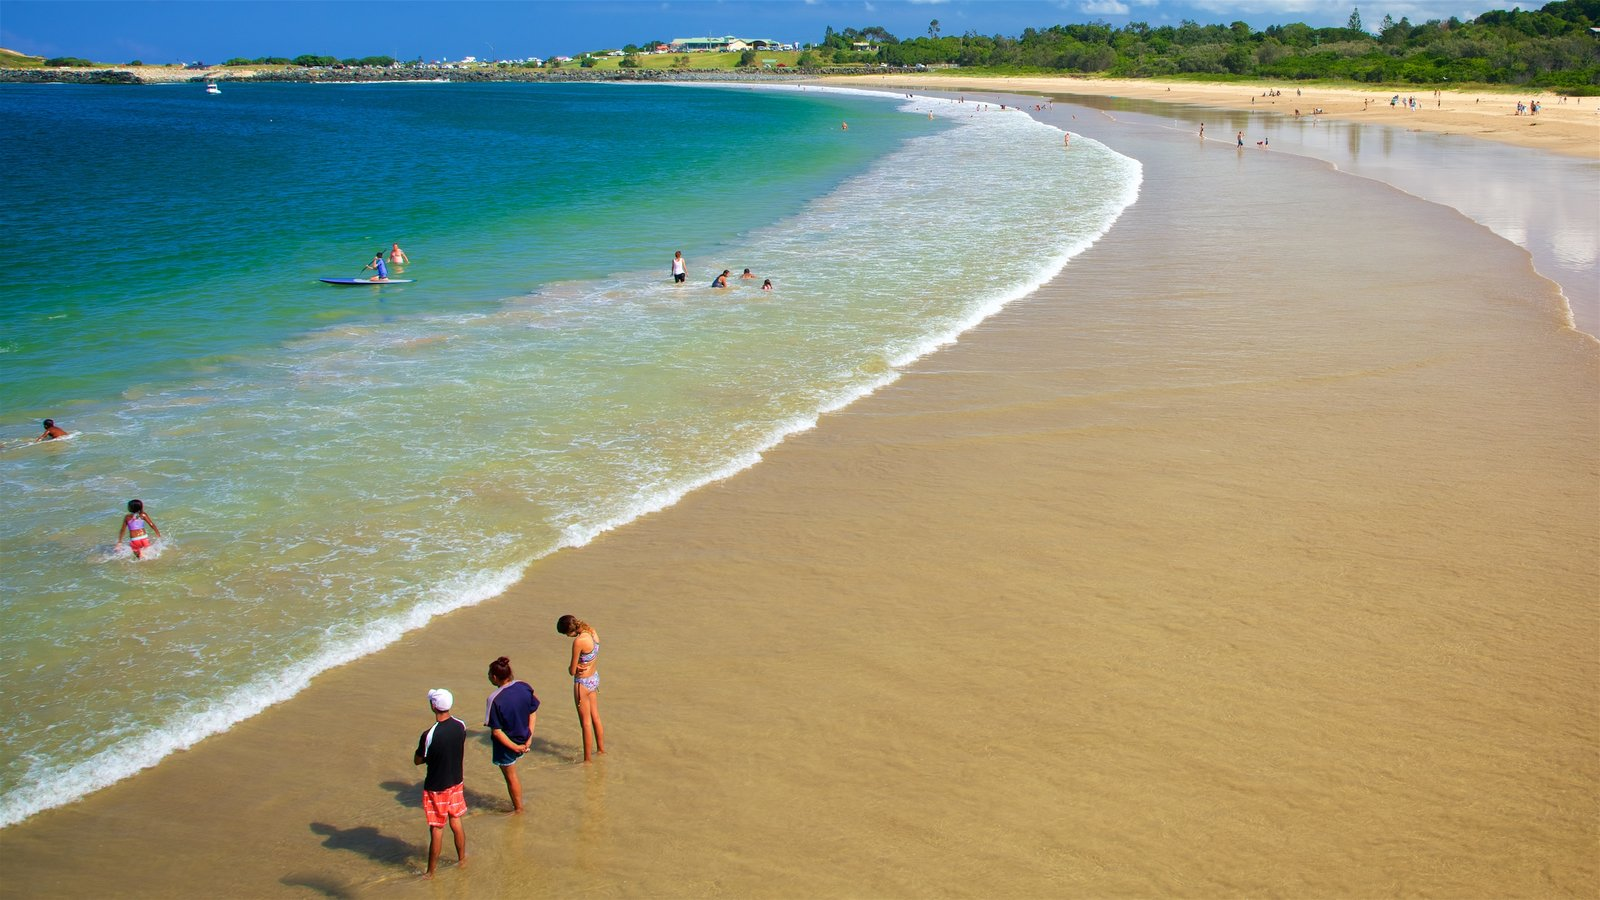 Coffs Harbour which includes swimming, a beach and general coastal views